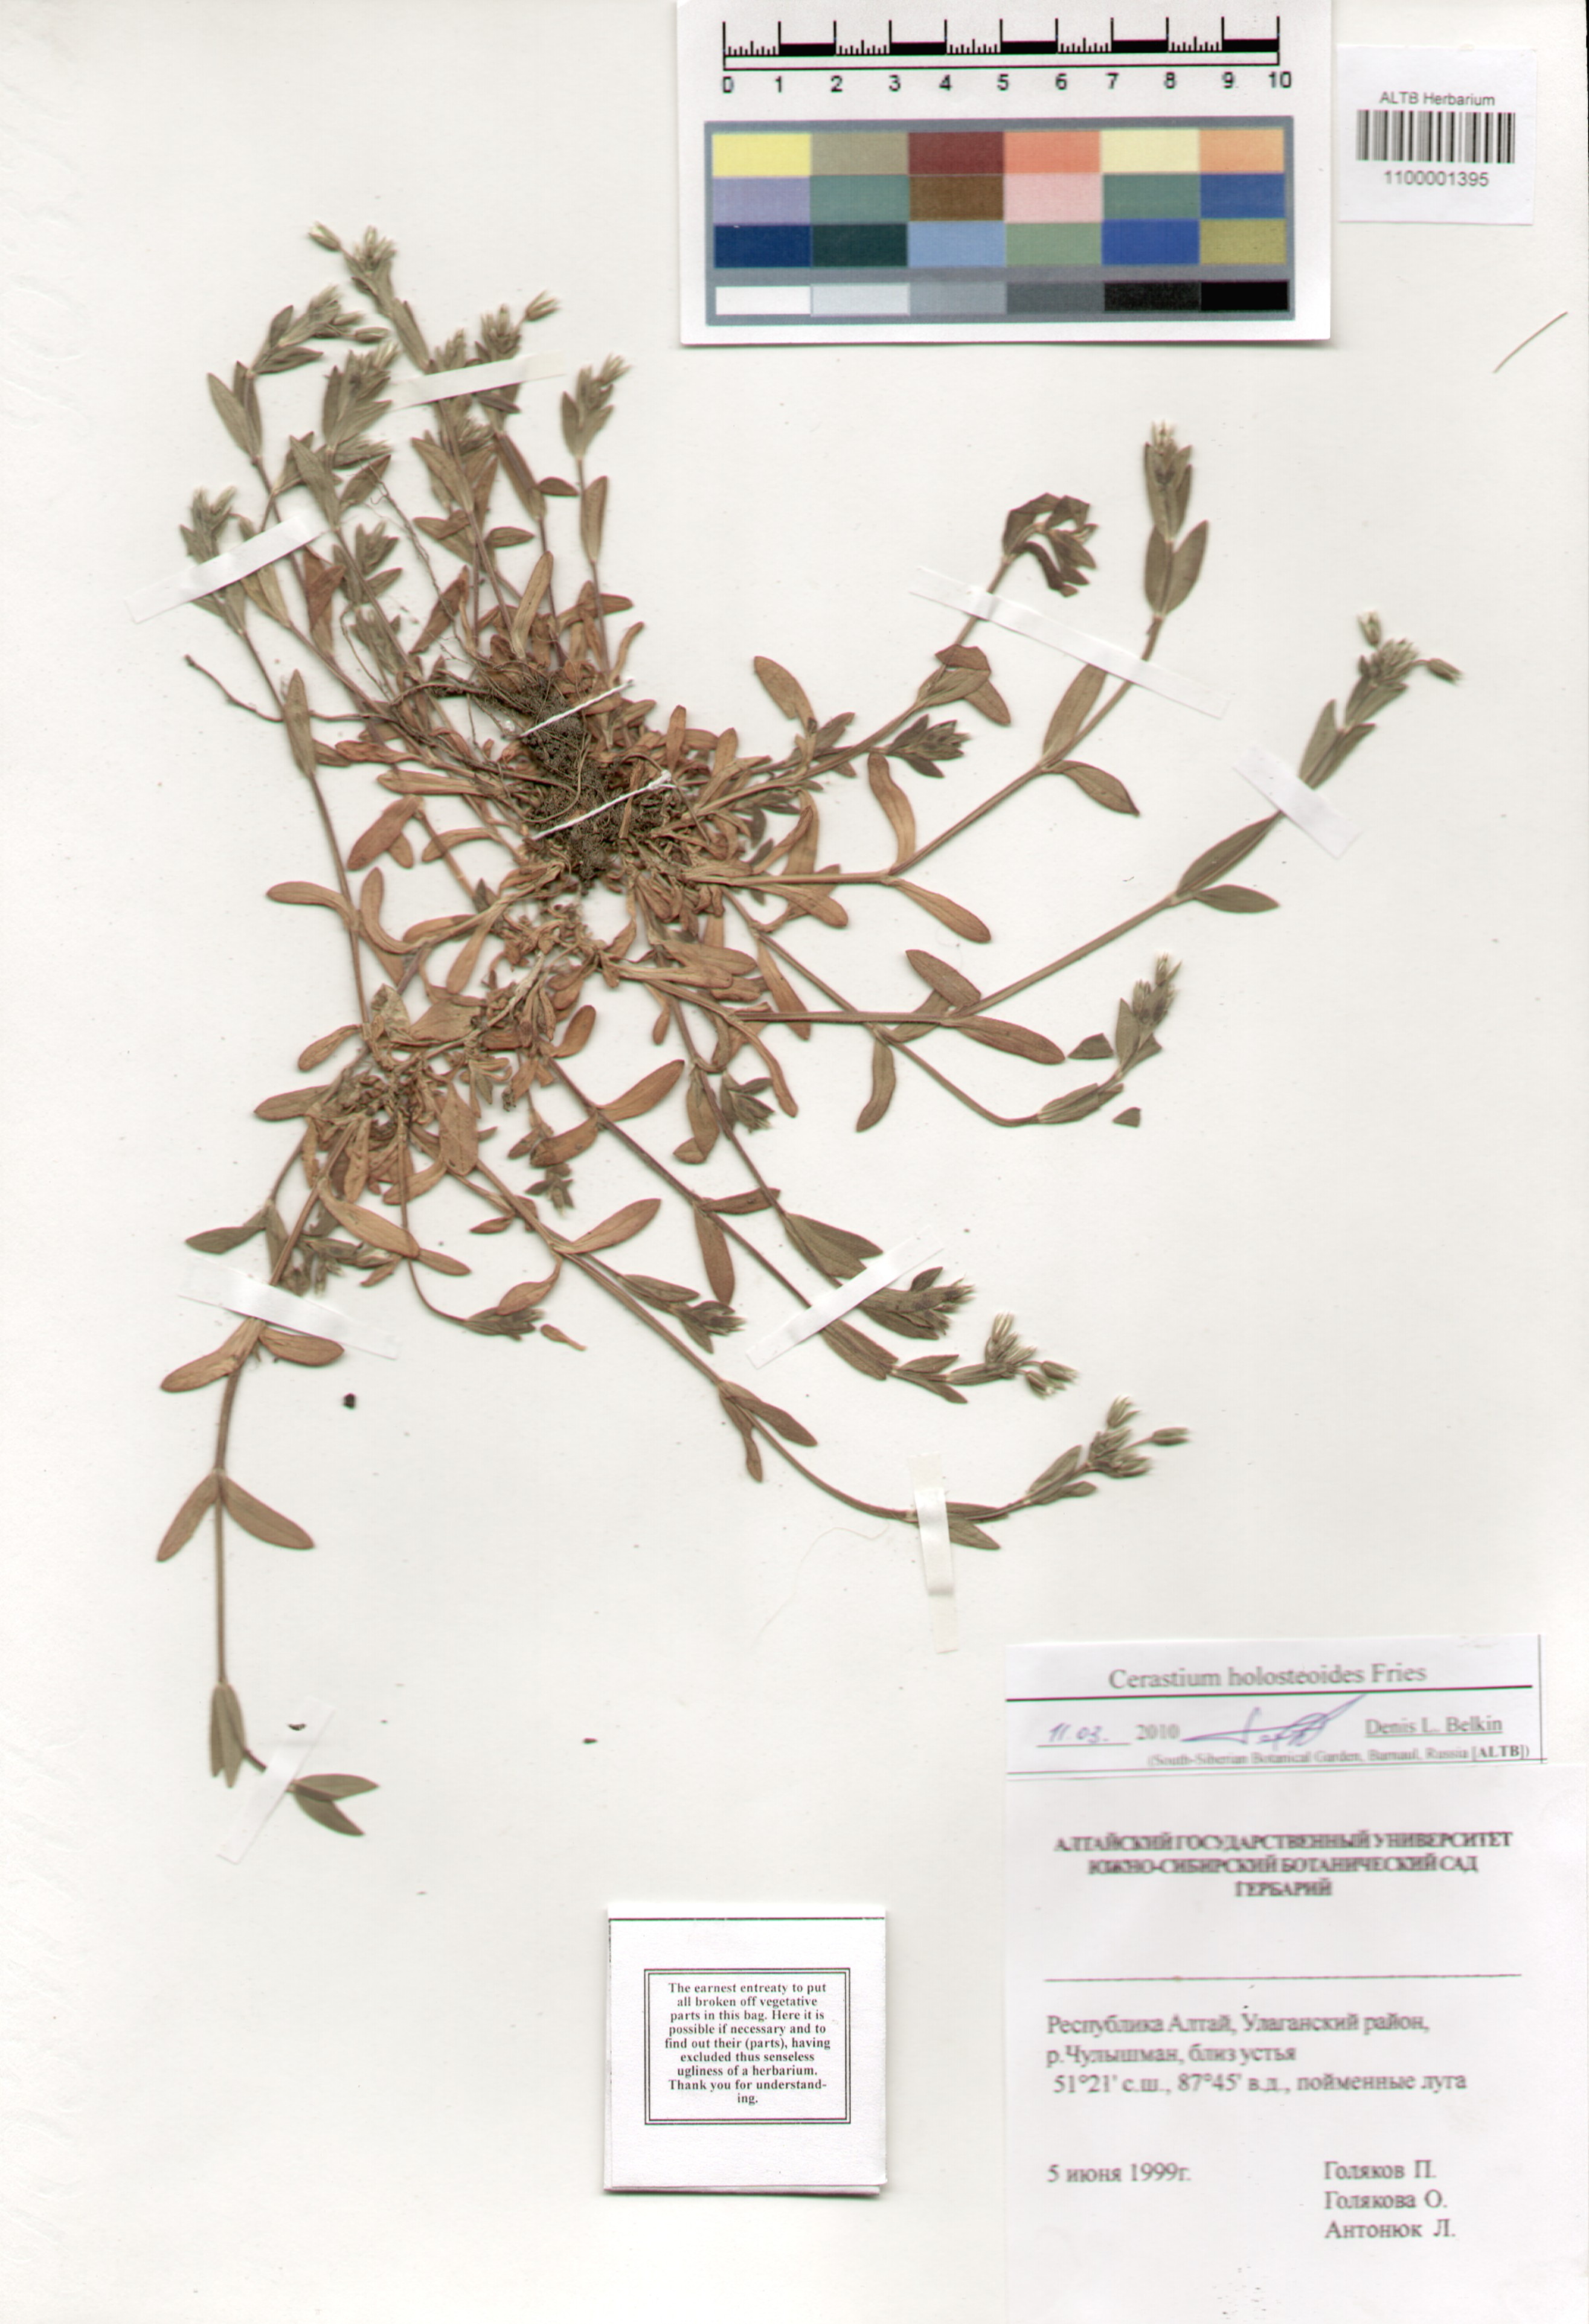 Caryophyllaceae,Cerastium holosteoides Fries.